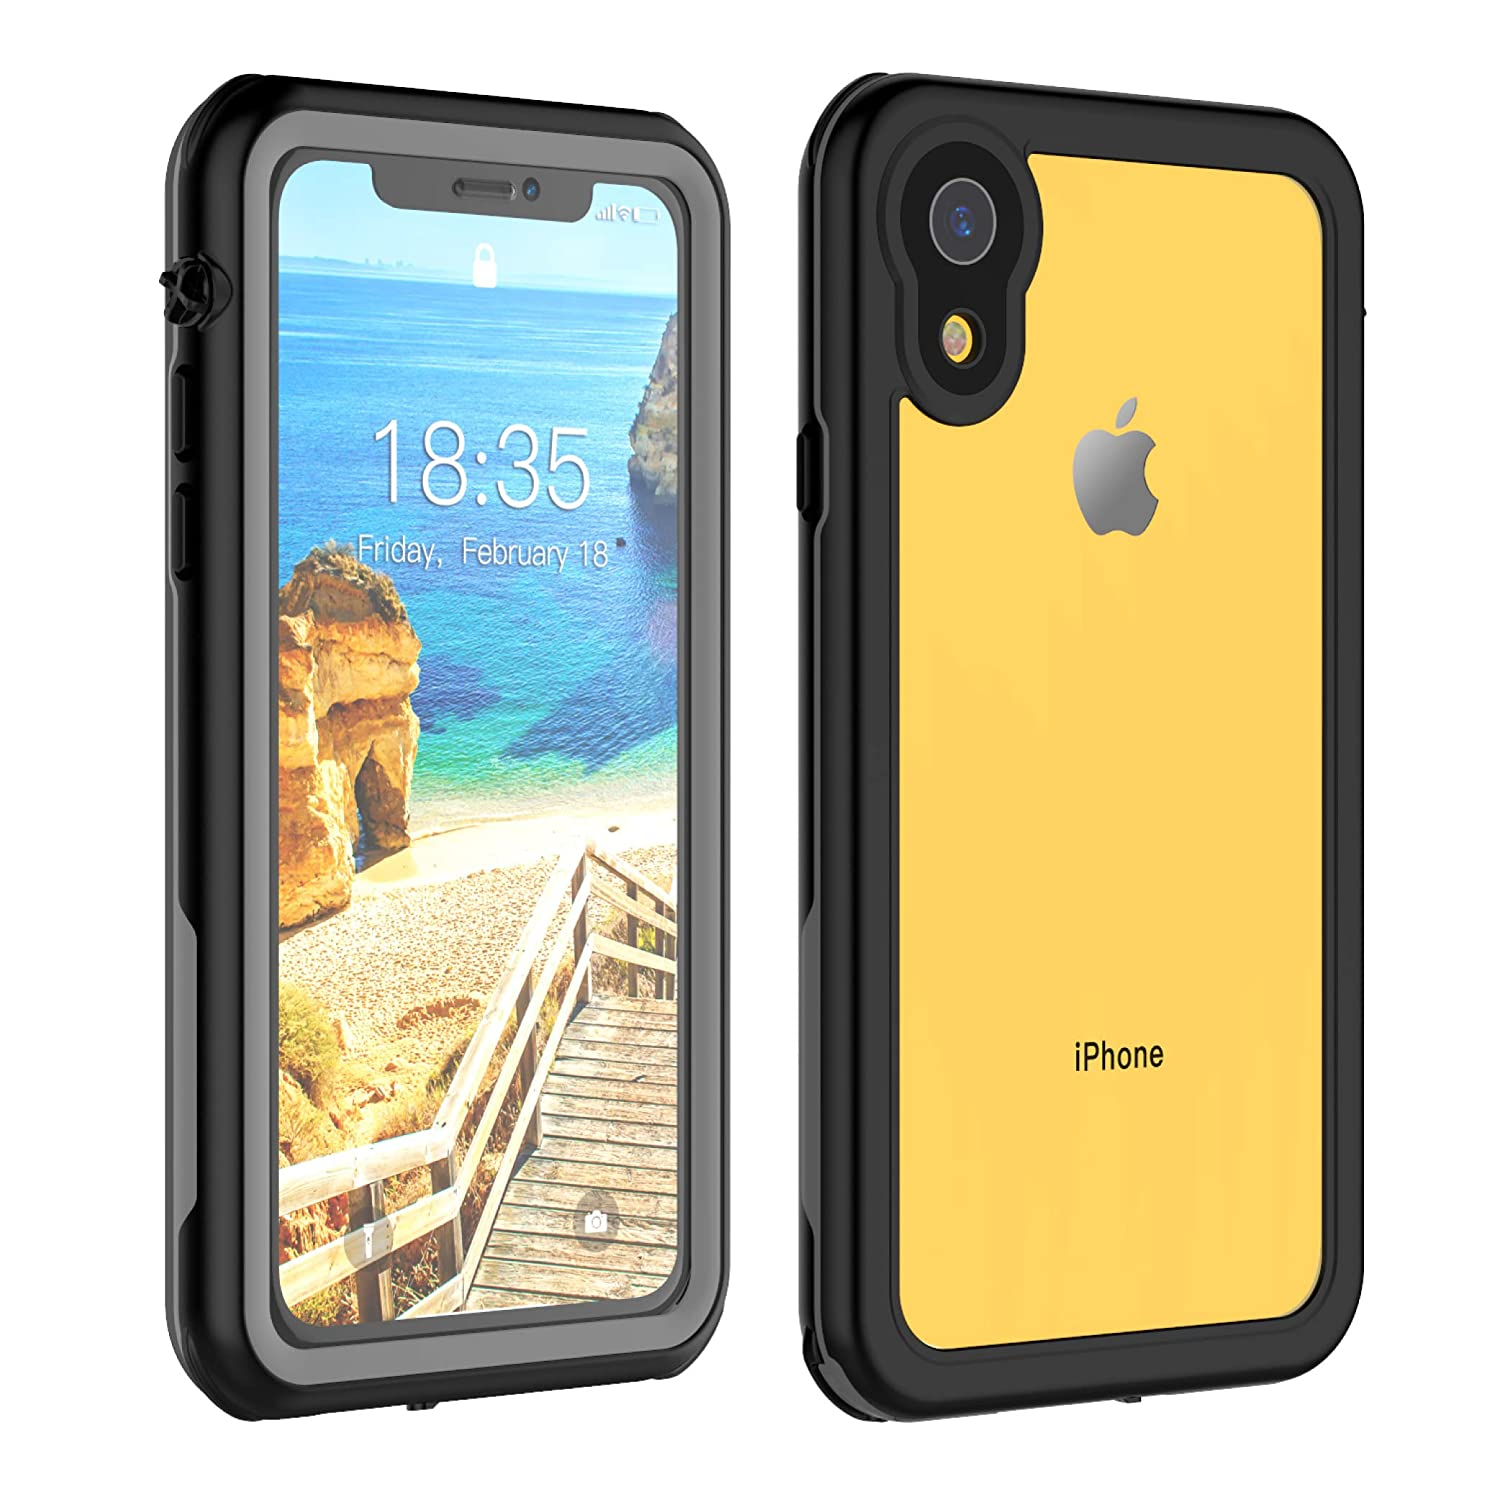 huge selection of 8c205 8c2d6 iPhone XR Waterproof Case 6.1 inch, Full Body Protective with Built-in  Screen Protector Clear Waterproof Case for iPhone Xr Case 6.1 Inch 2018.